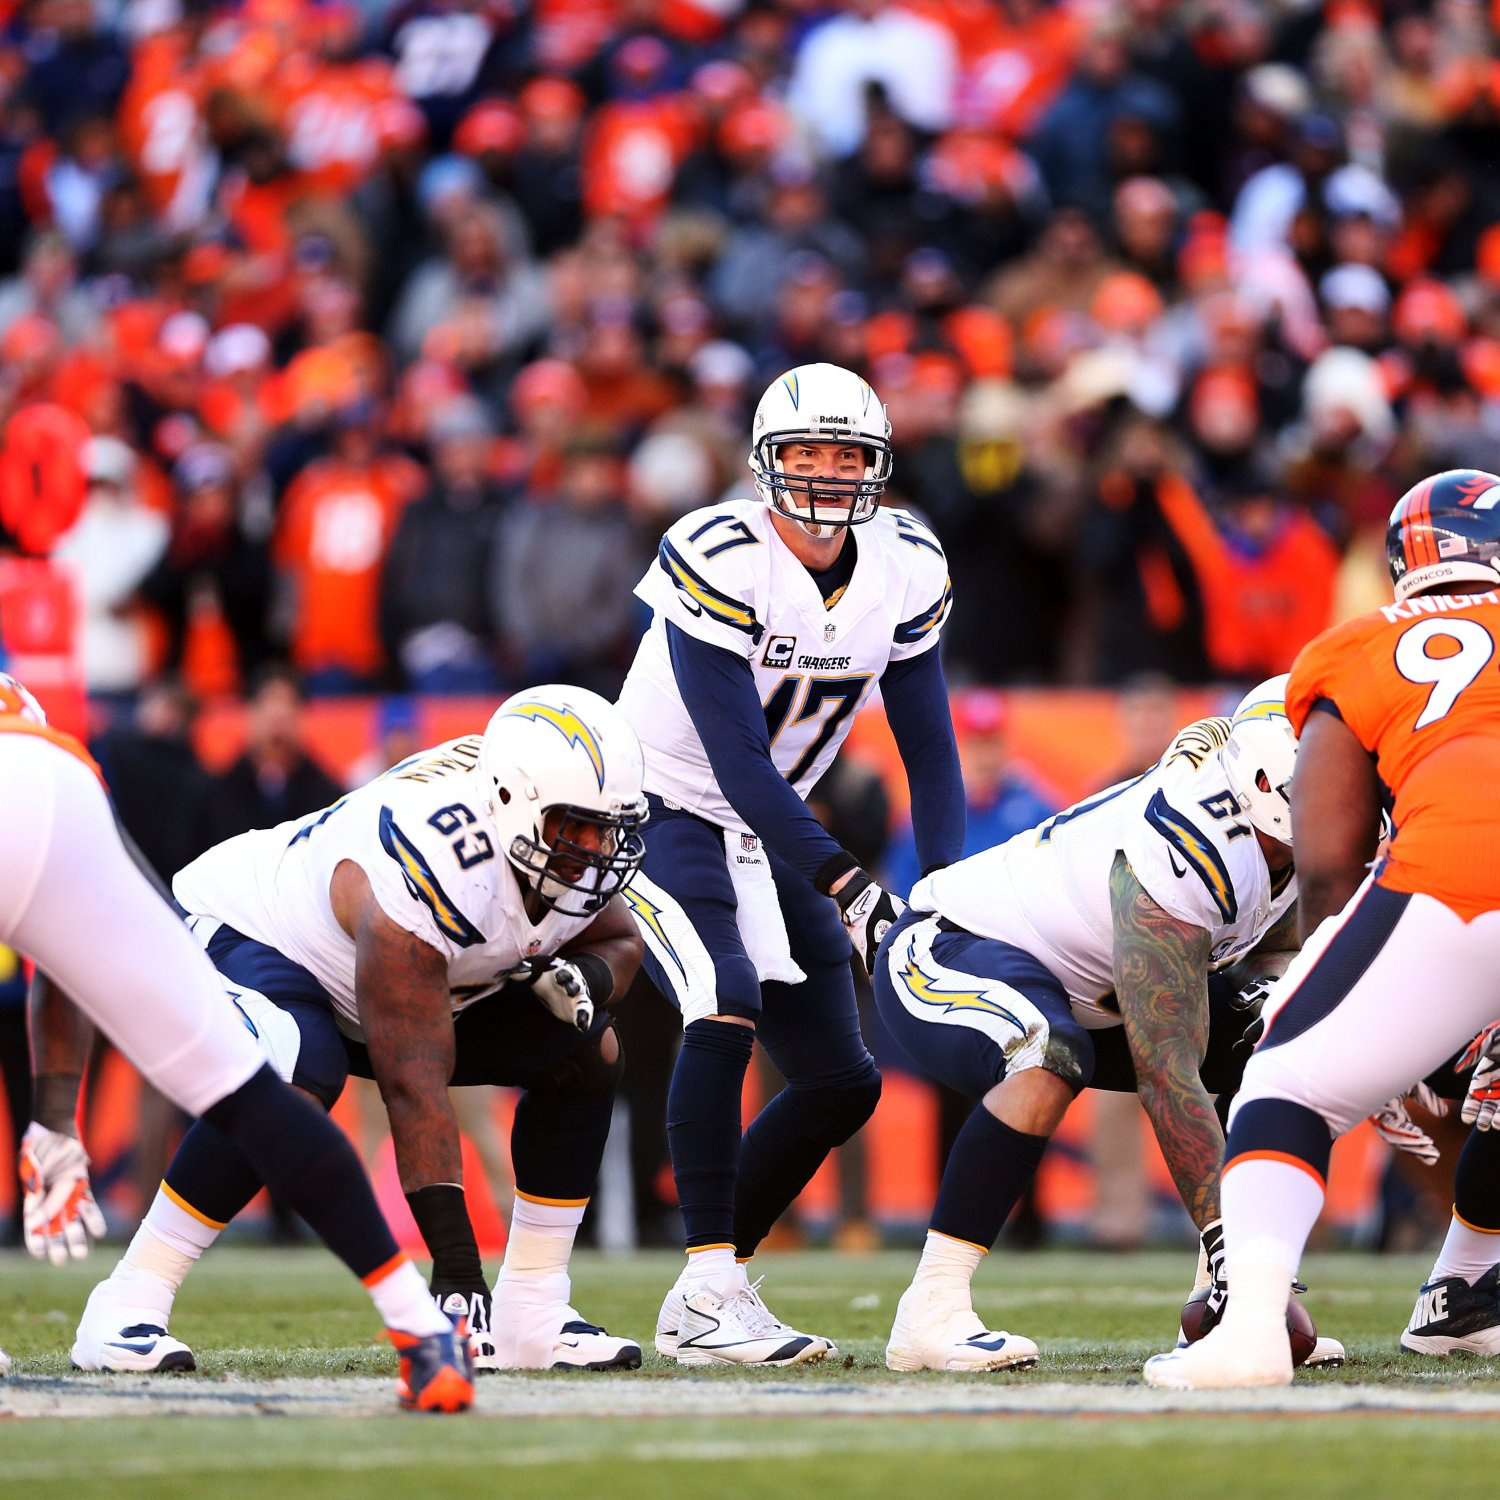 San Diego Chargers Current Score: San Diego Chargers Vs. Denver Broncos: Live Score